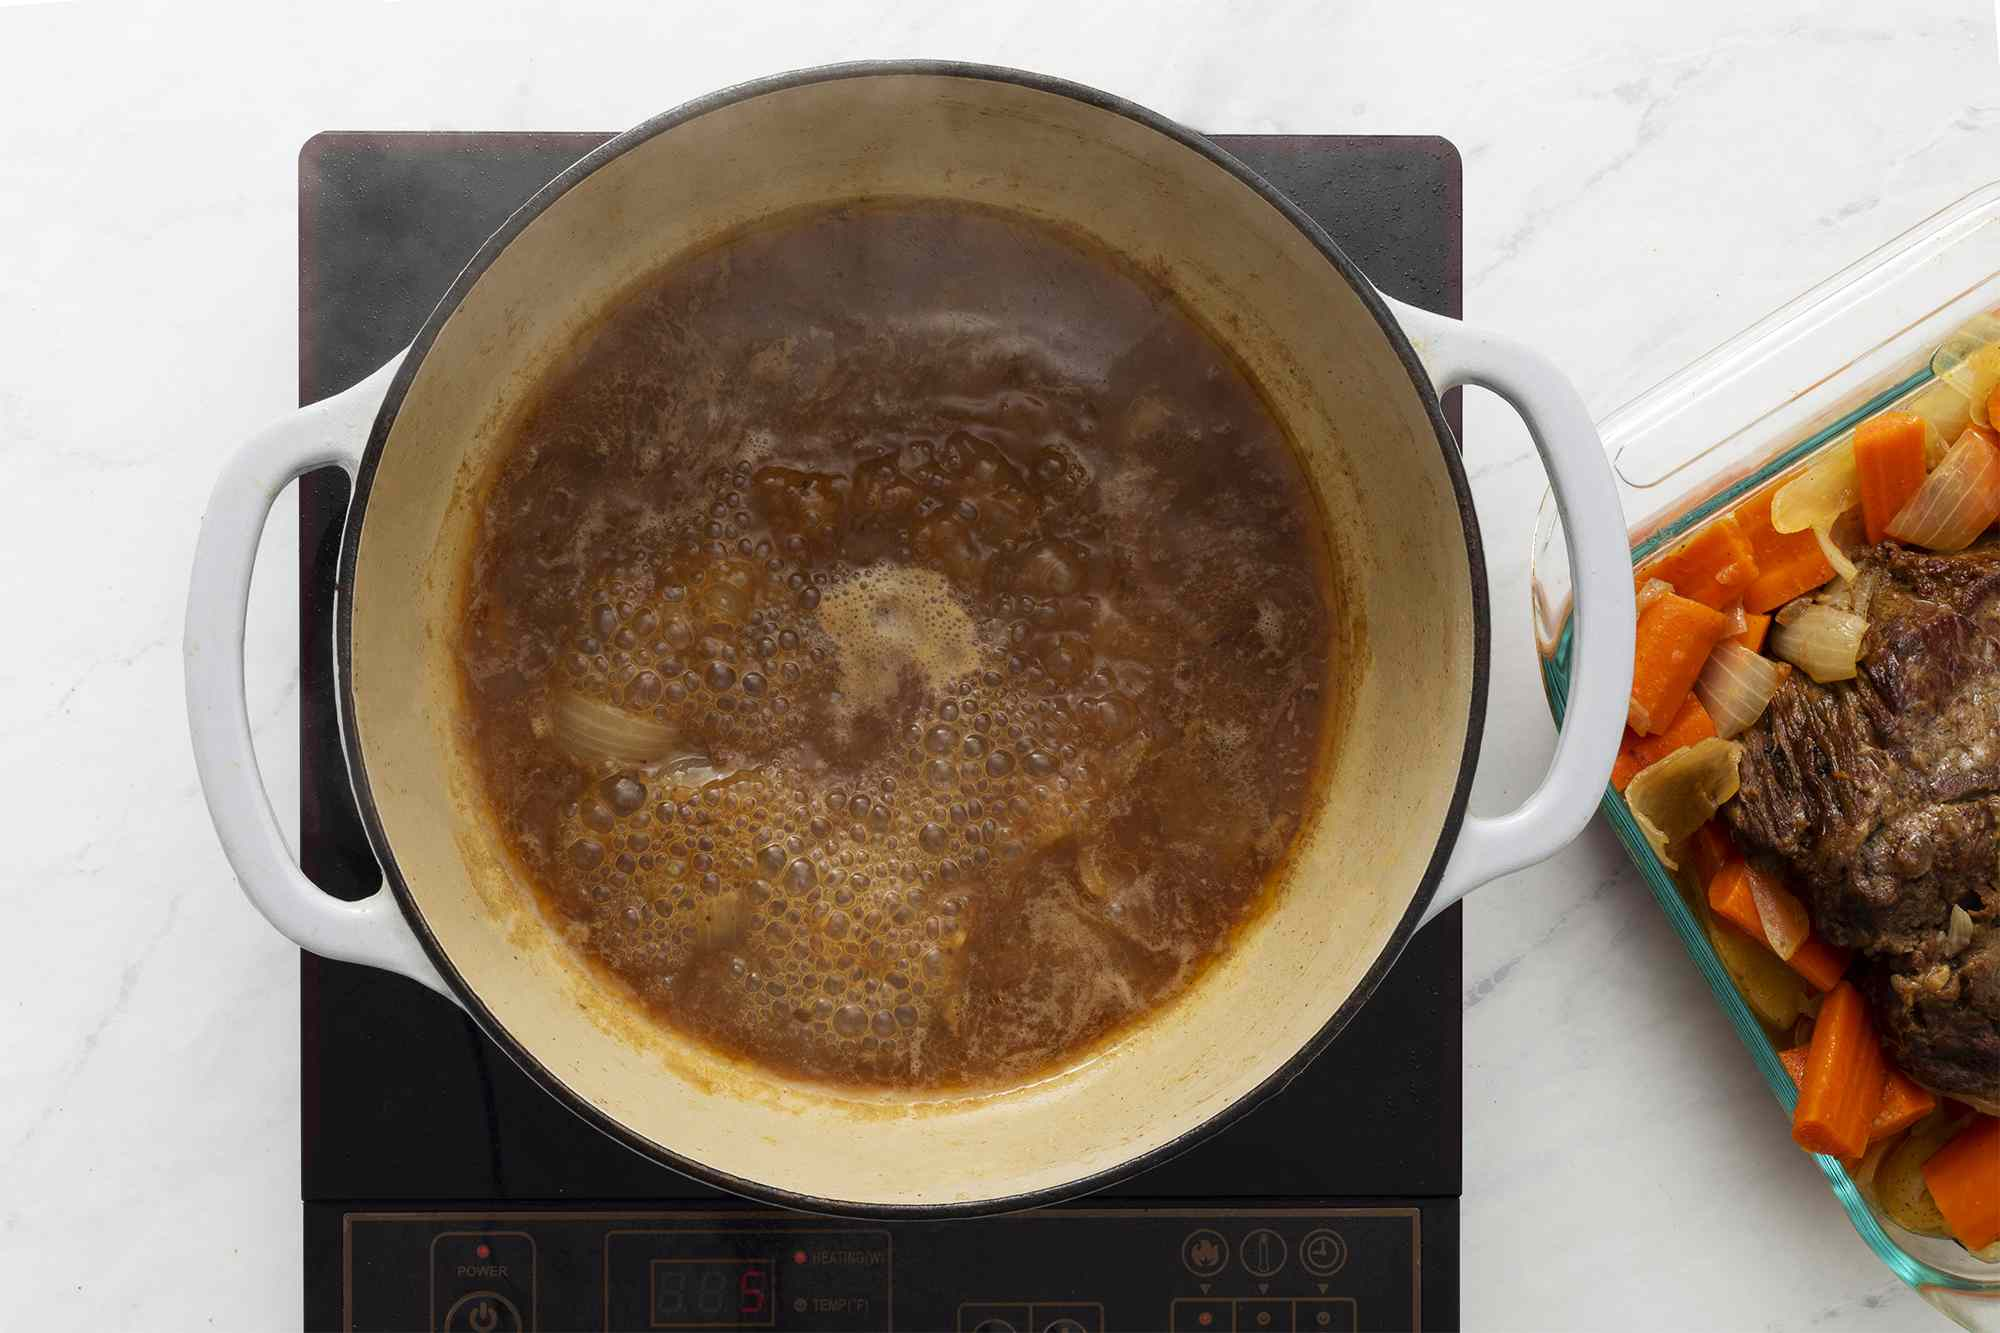 pot roast and vegetable removed from the Dutch oven, stock remains in the Dutch oven